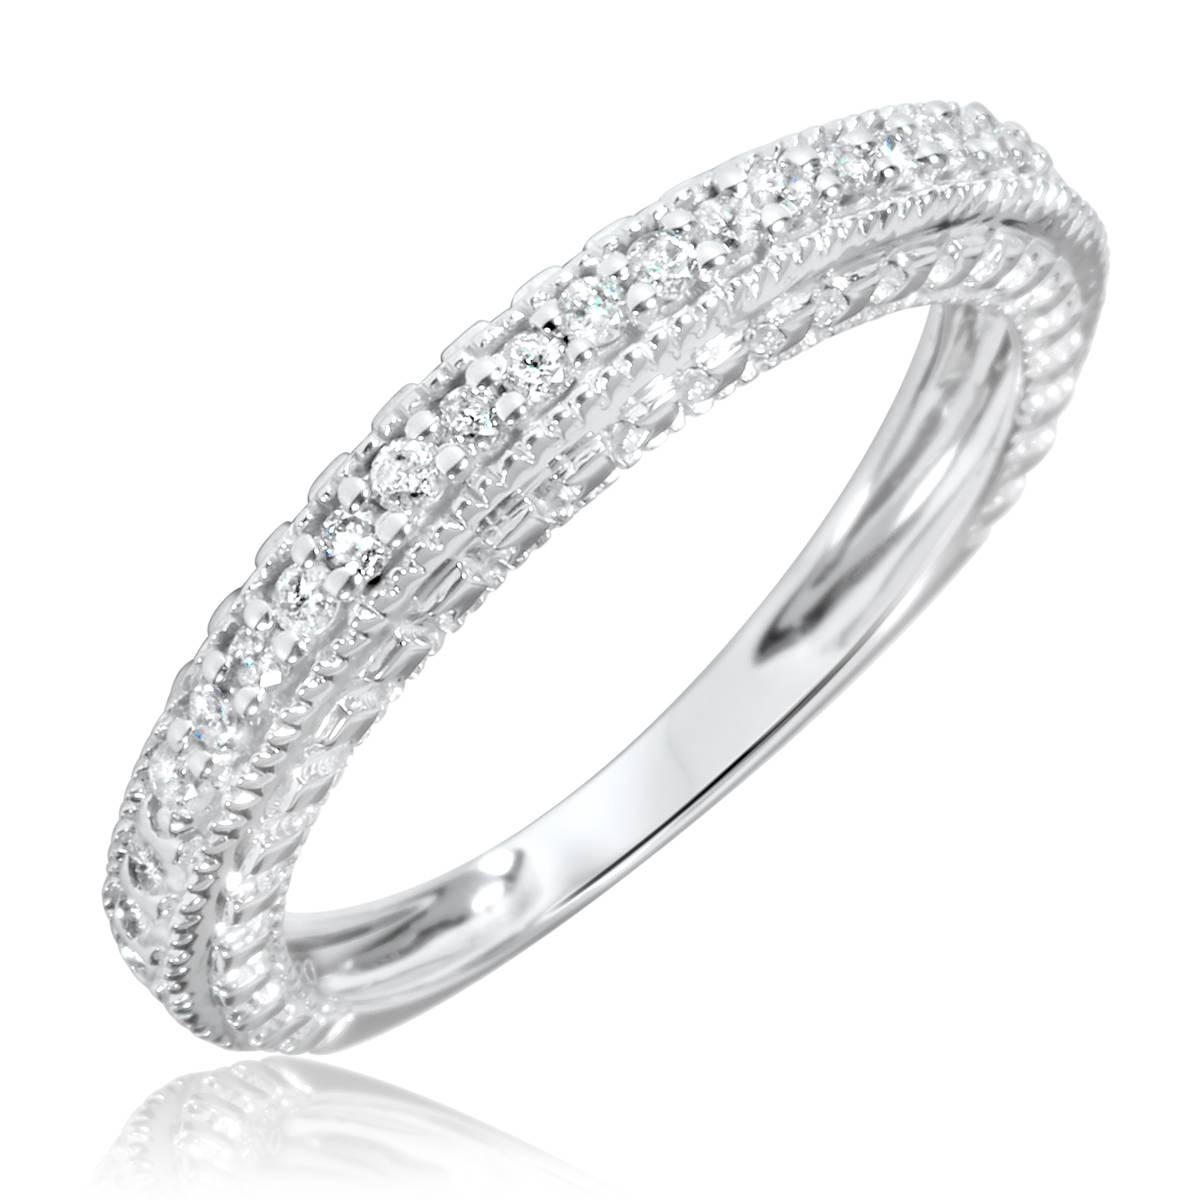 1 Carat Diamond Trio Wedding Ring Set 14K White Gold Pertaining To White Gold Wedding Bands For Women (View 2 of 15)